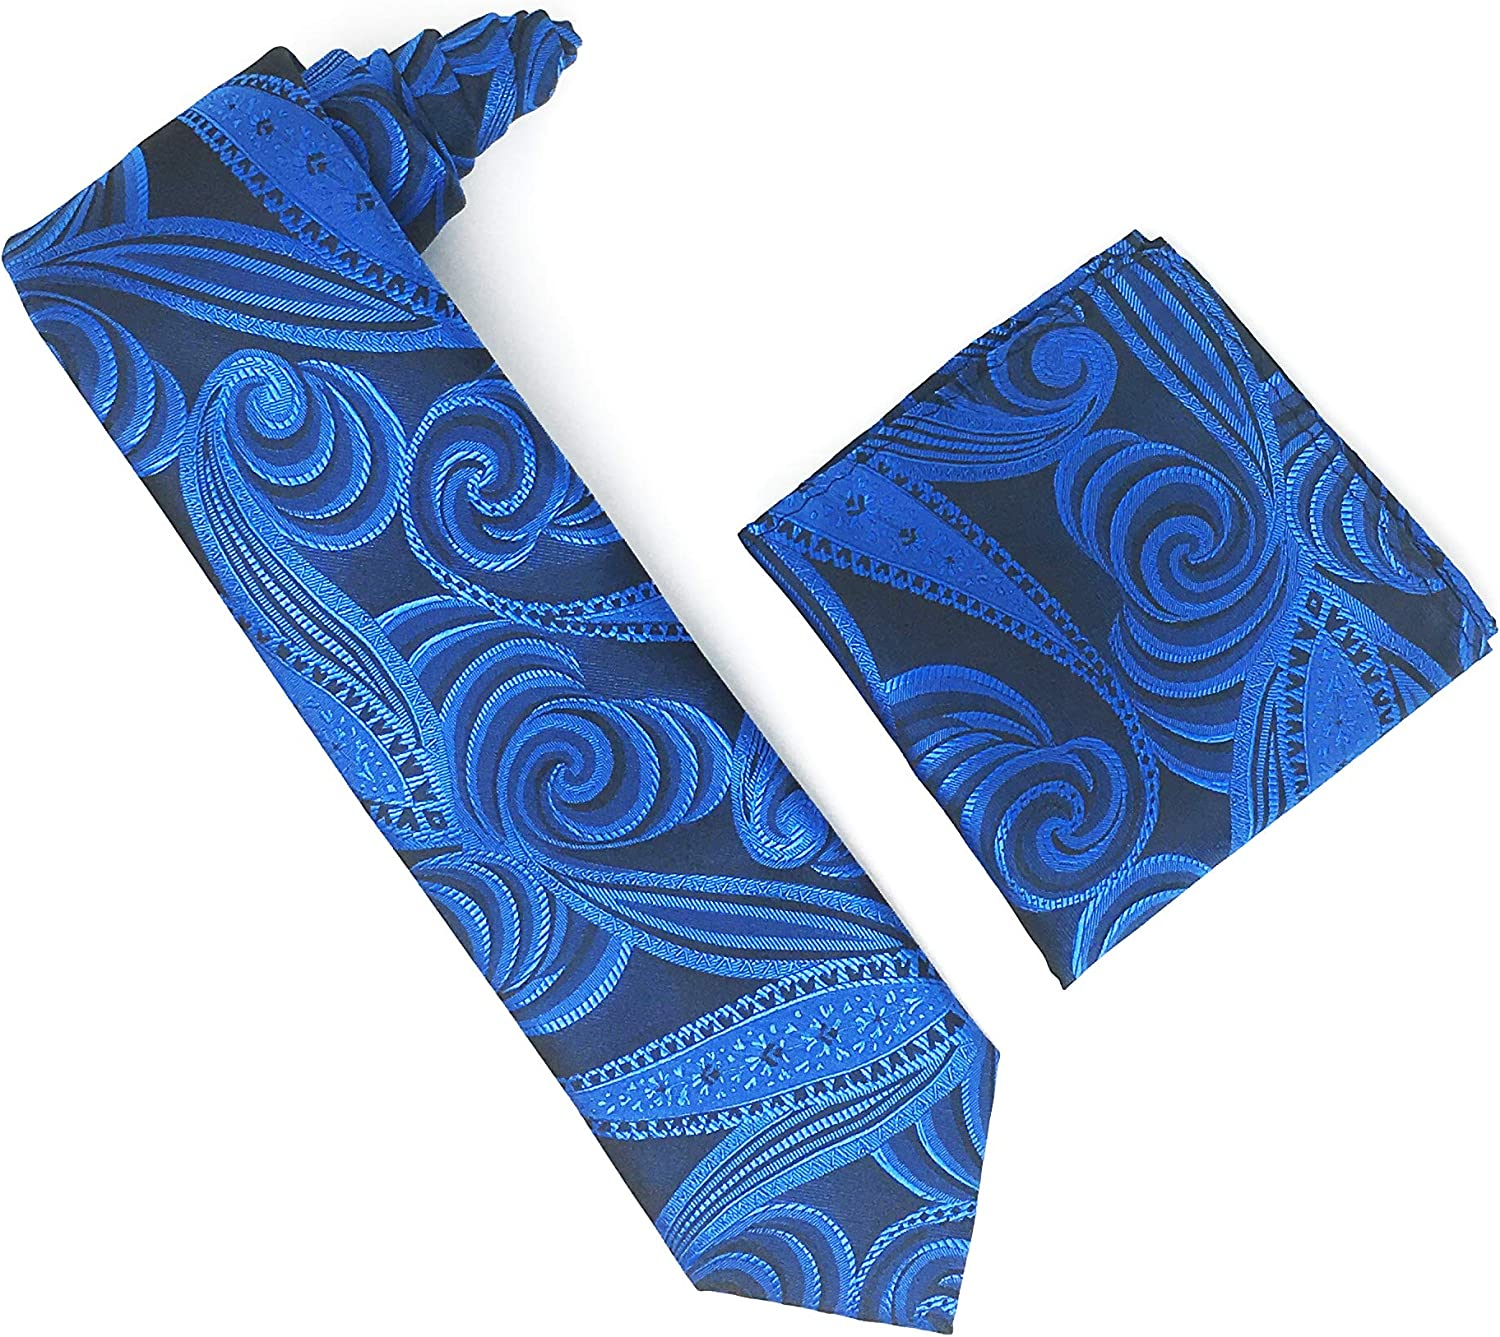 Black, Royal Blue & Navy Designed 100% Silk Woven Necktie With Matching Pocket Square